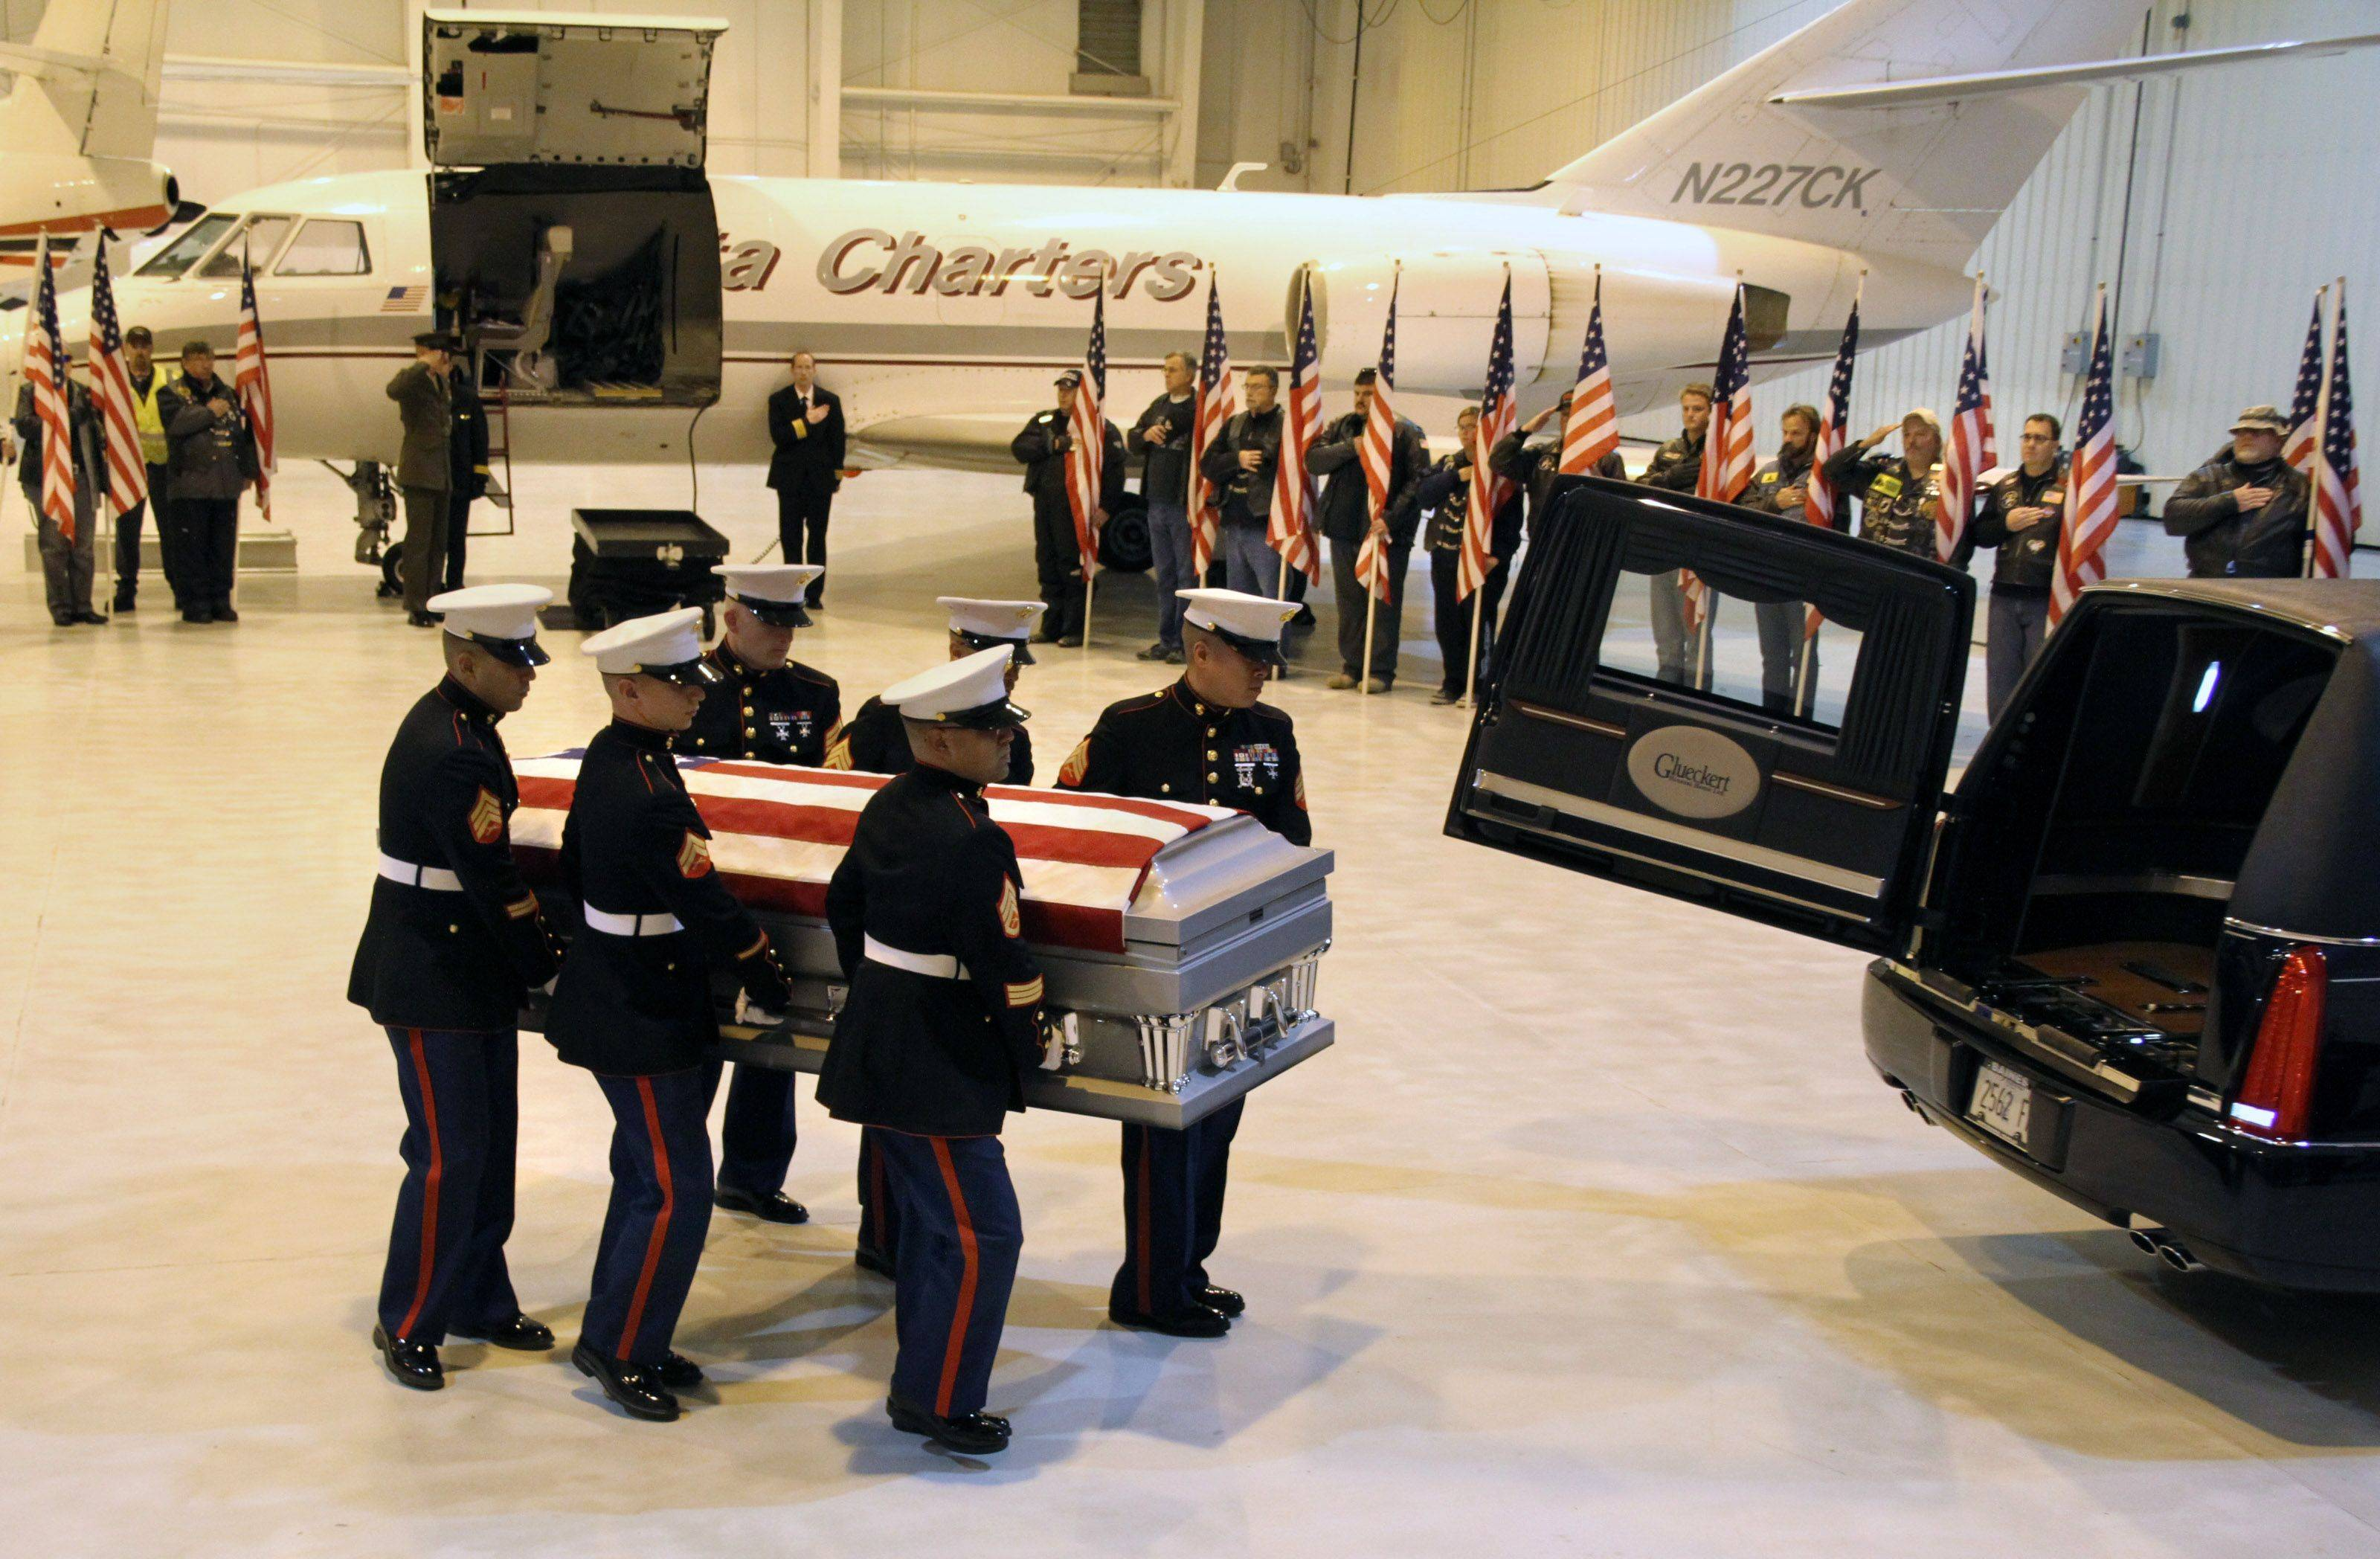 George LeClaire/gleclaire@dailyherald.comA Marine Corps team carries the flag-draped casket of Marine Lance Cpl. James Stack, 20, of Arlington Heights at Chicago Executive Airport in Wheeling